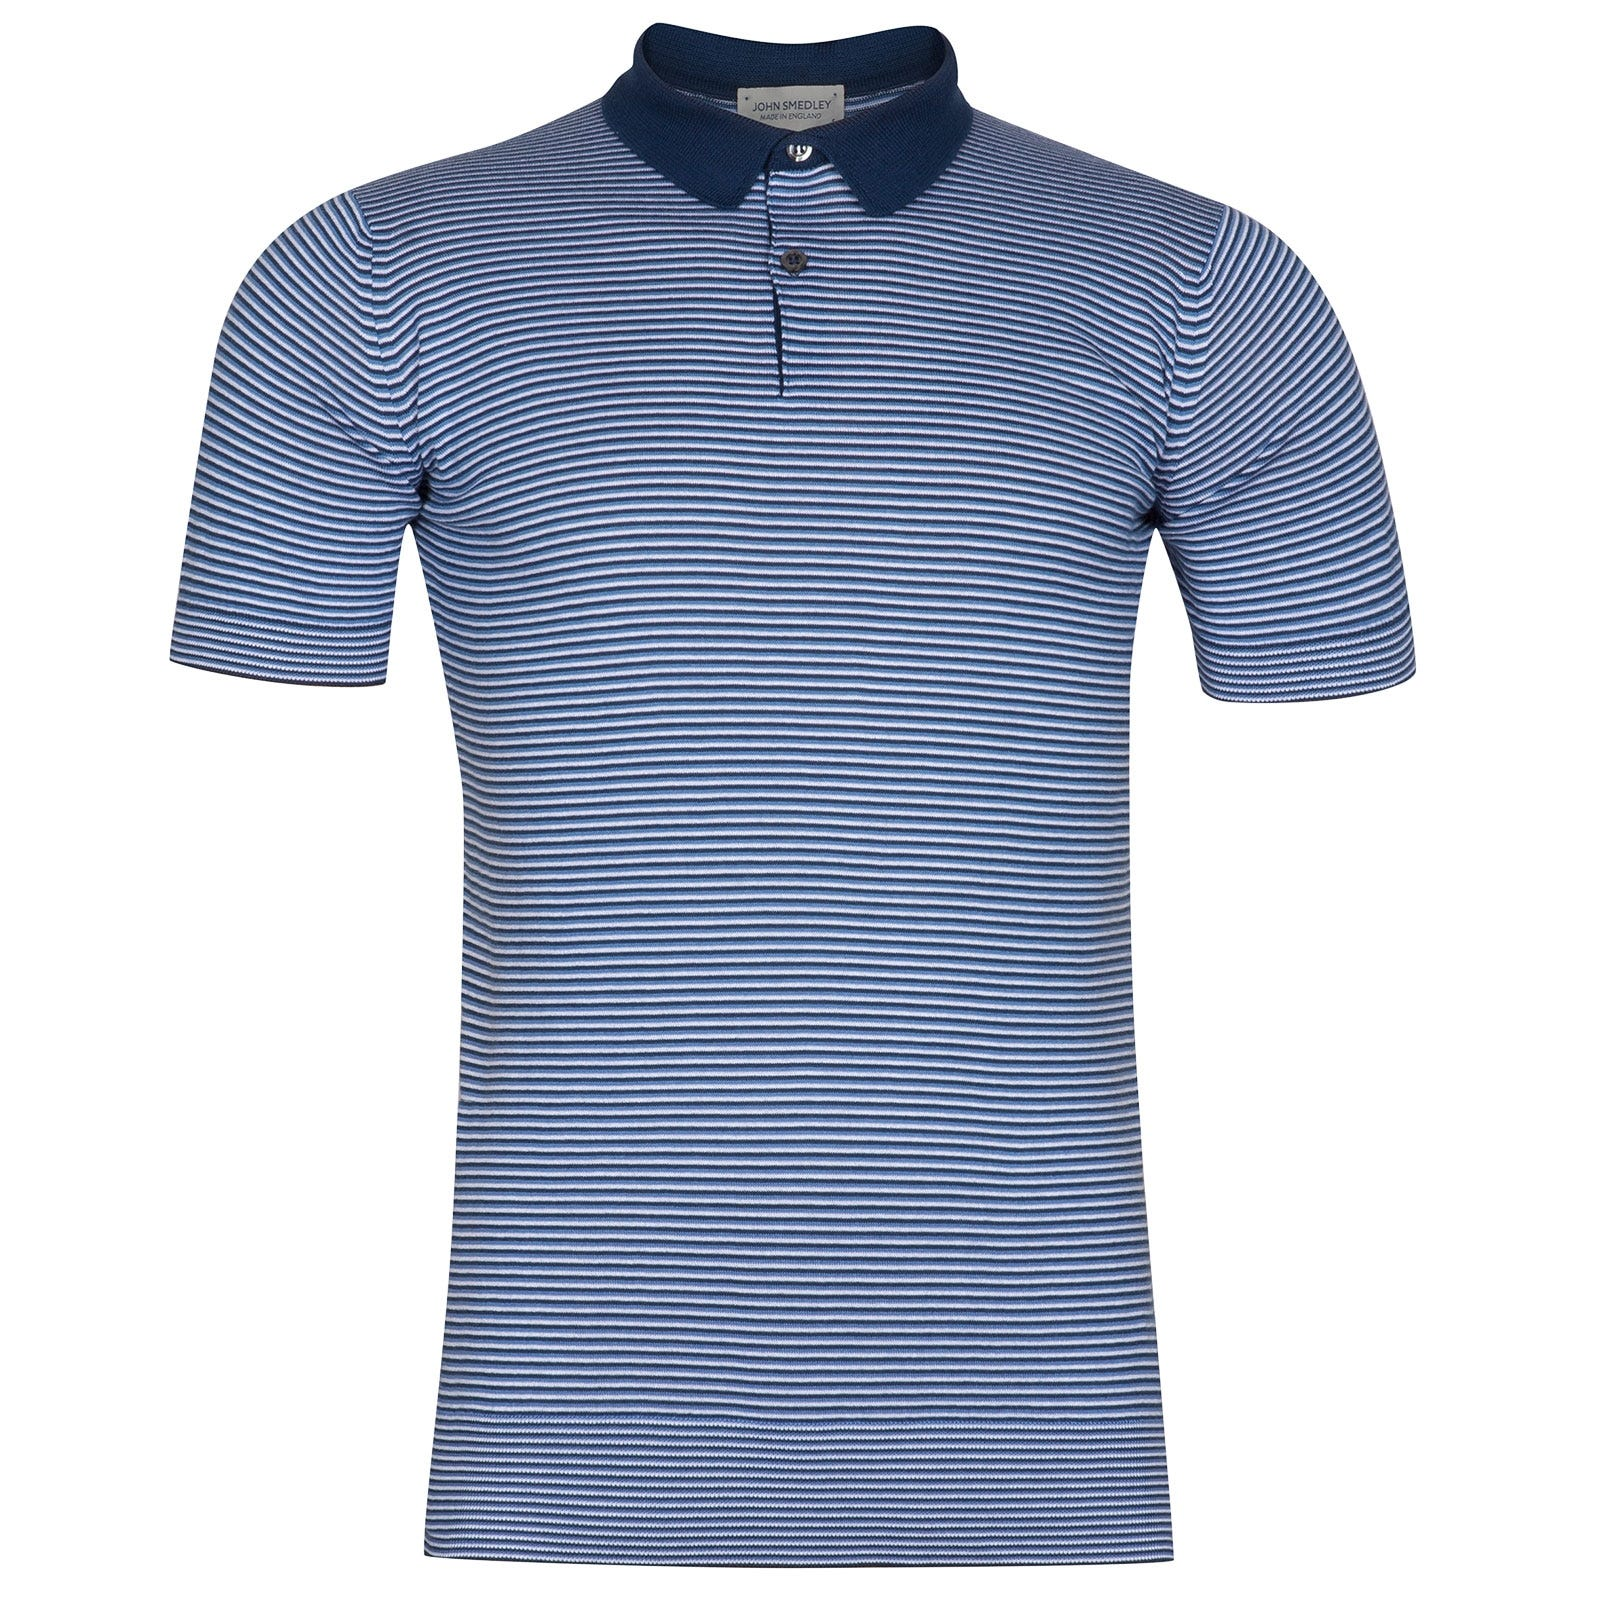 John Smedley Etton Sea Island Cotton Shirt in Indigo-S